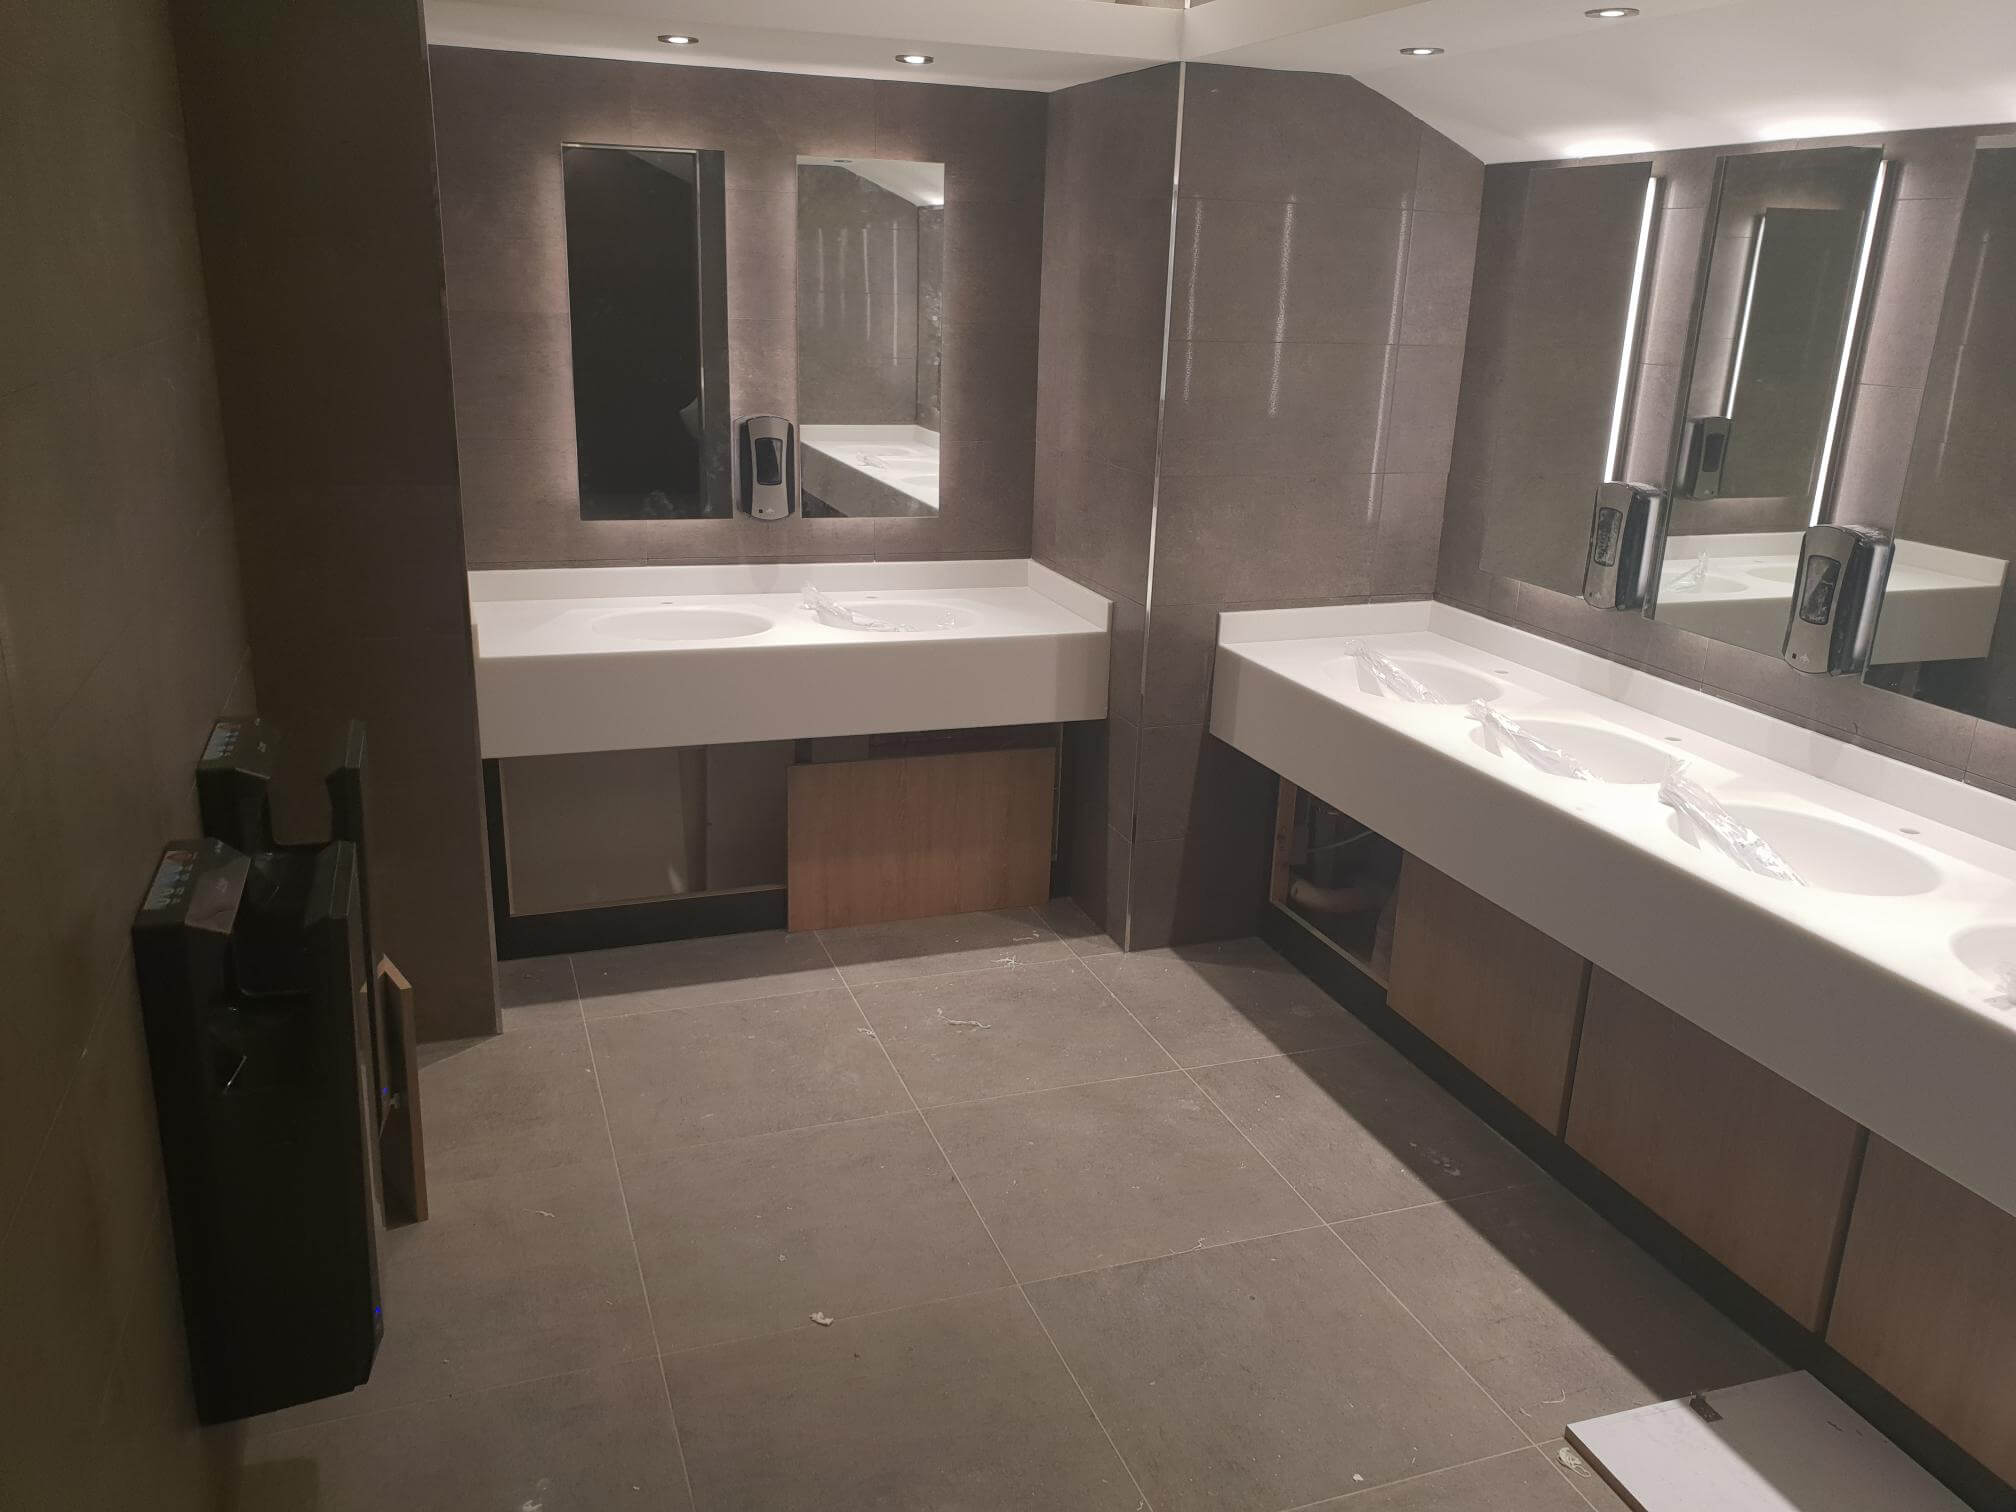 Commercial Cineworld Newcastle Vanity Basins